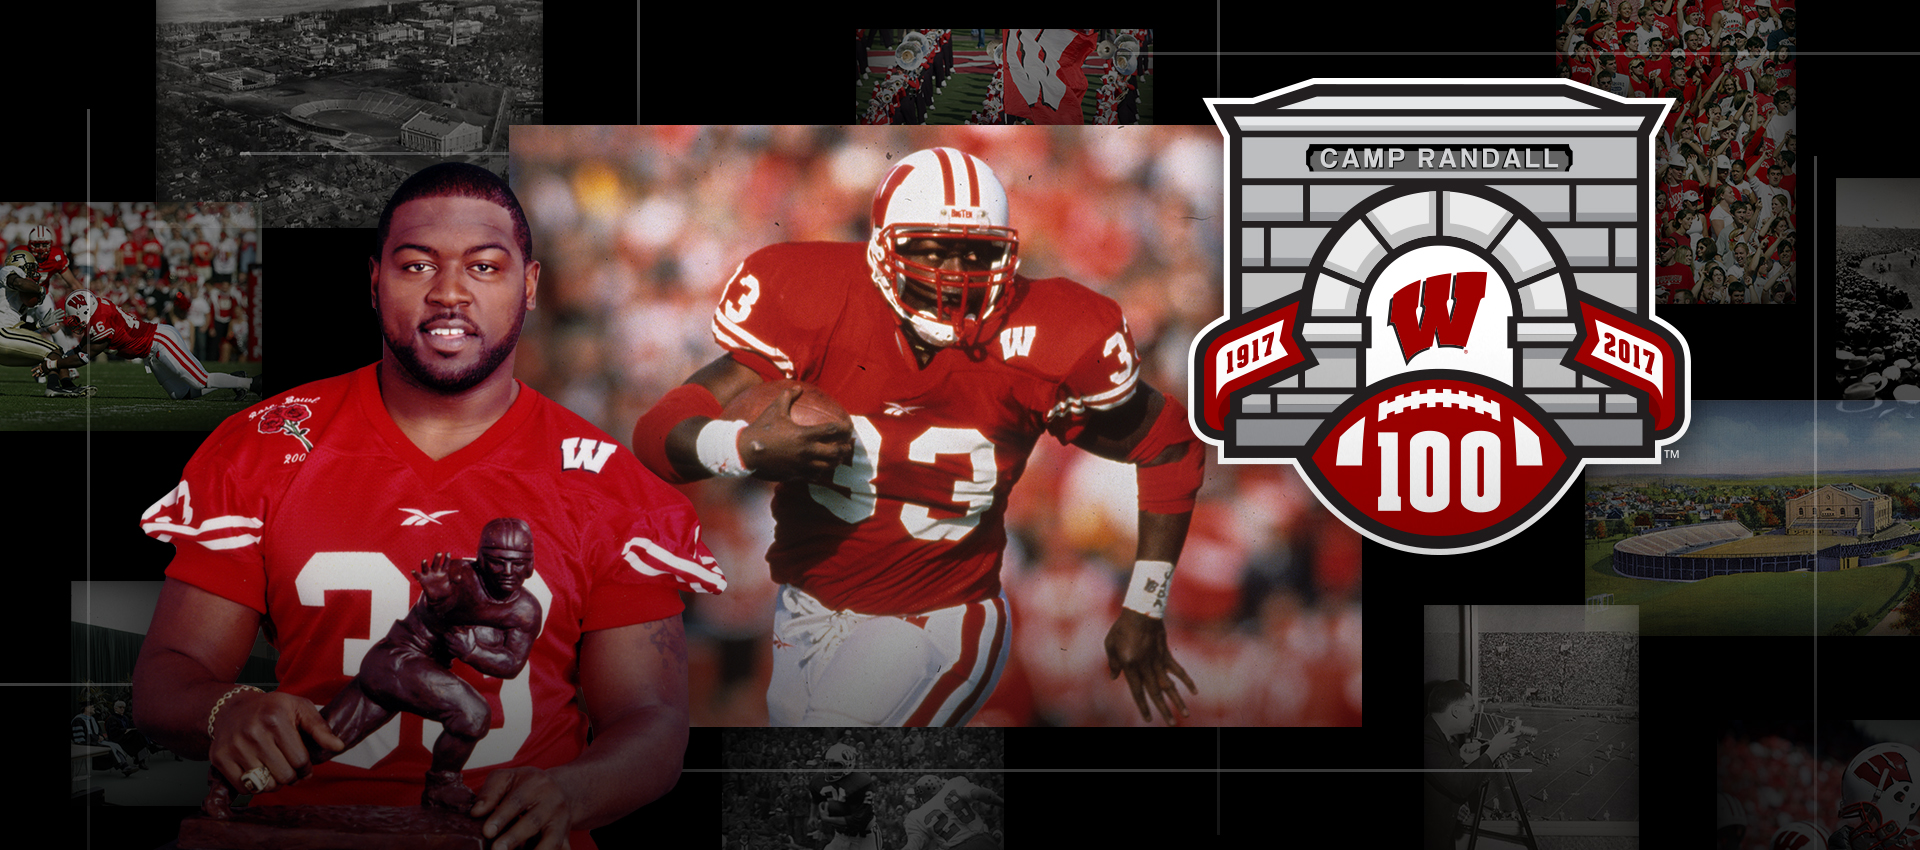 Camp Randall 100: Ron Dayne | Wisconsin Athletics